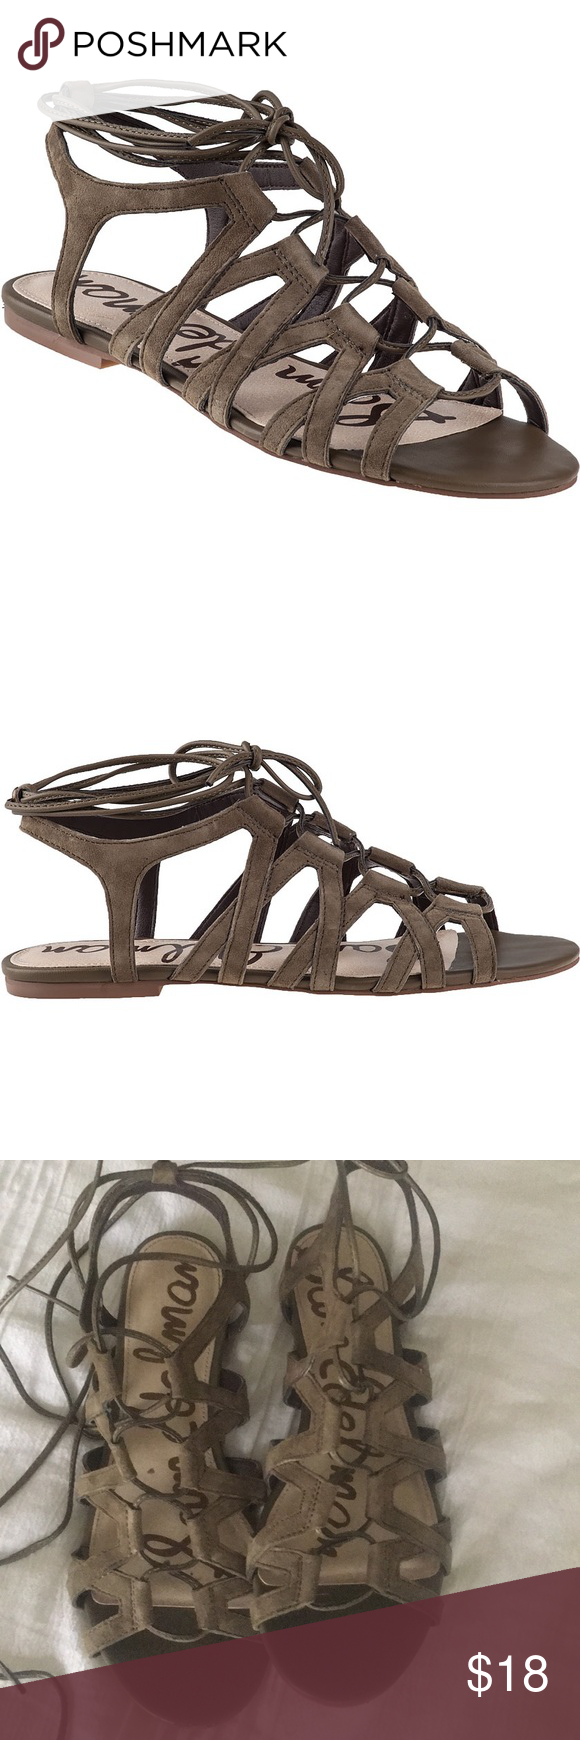 addfe8c89a9f Sam Edelman Boyden Sandal Olive Sz 8 Only worn once Sam Edelman Shoes  Sandals